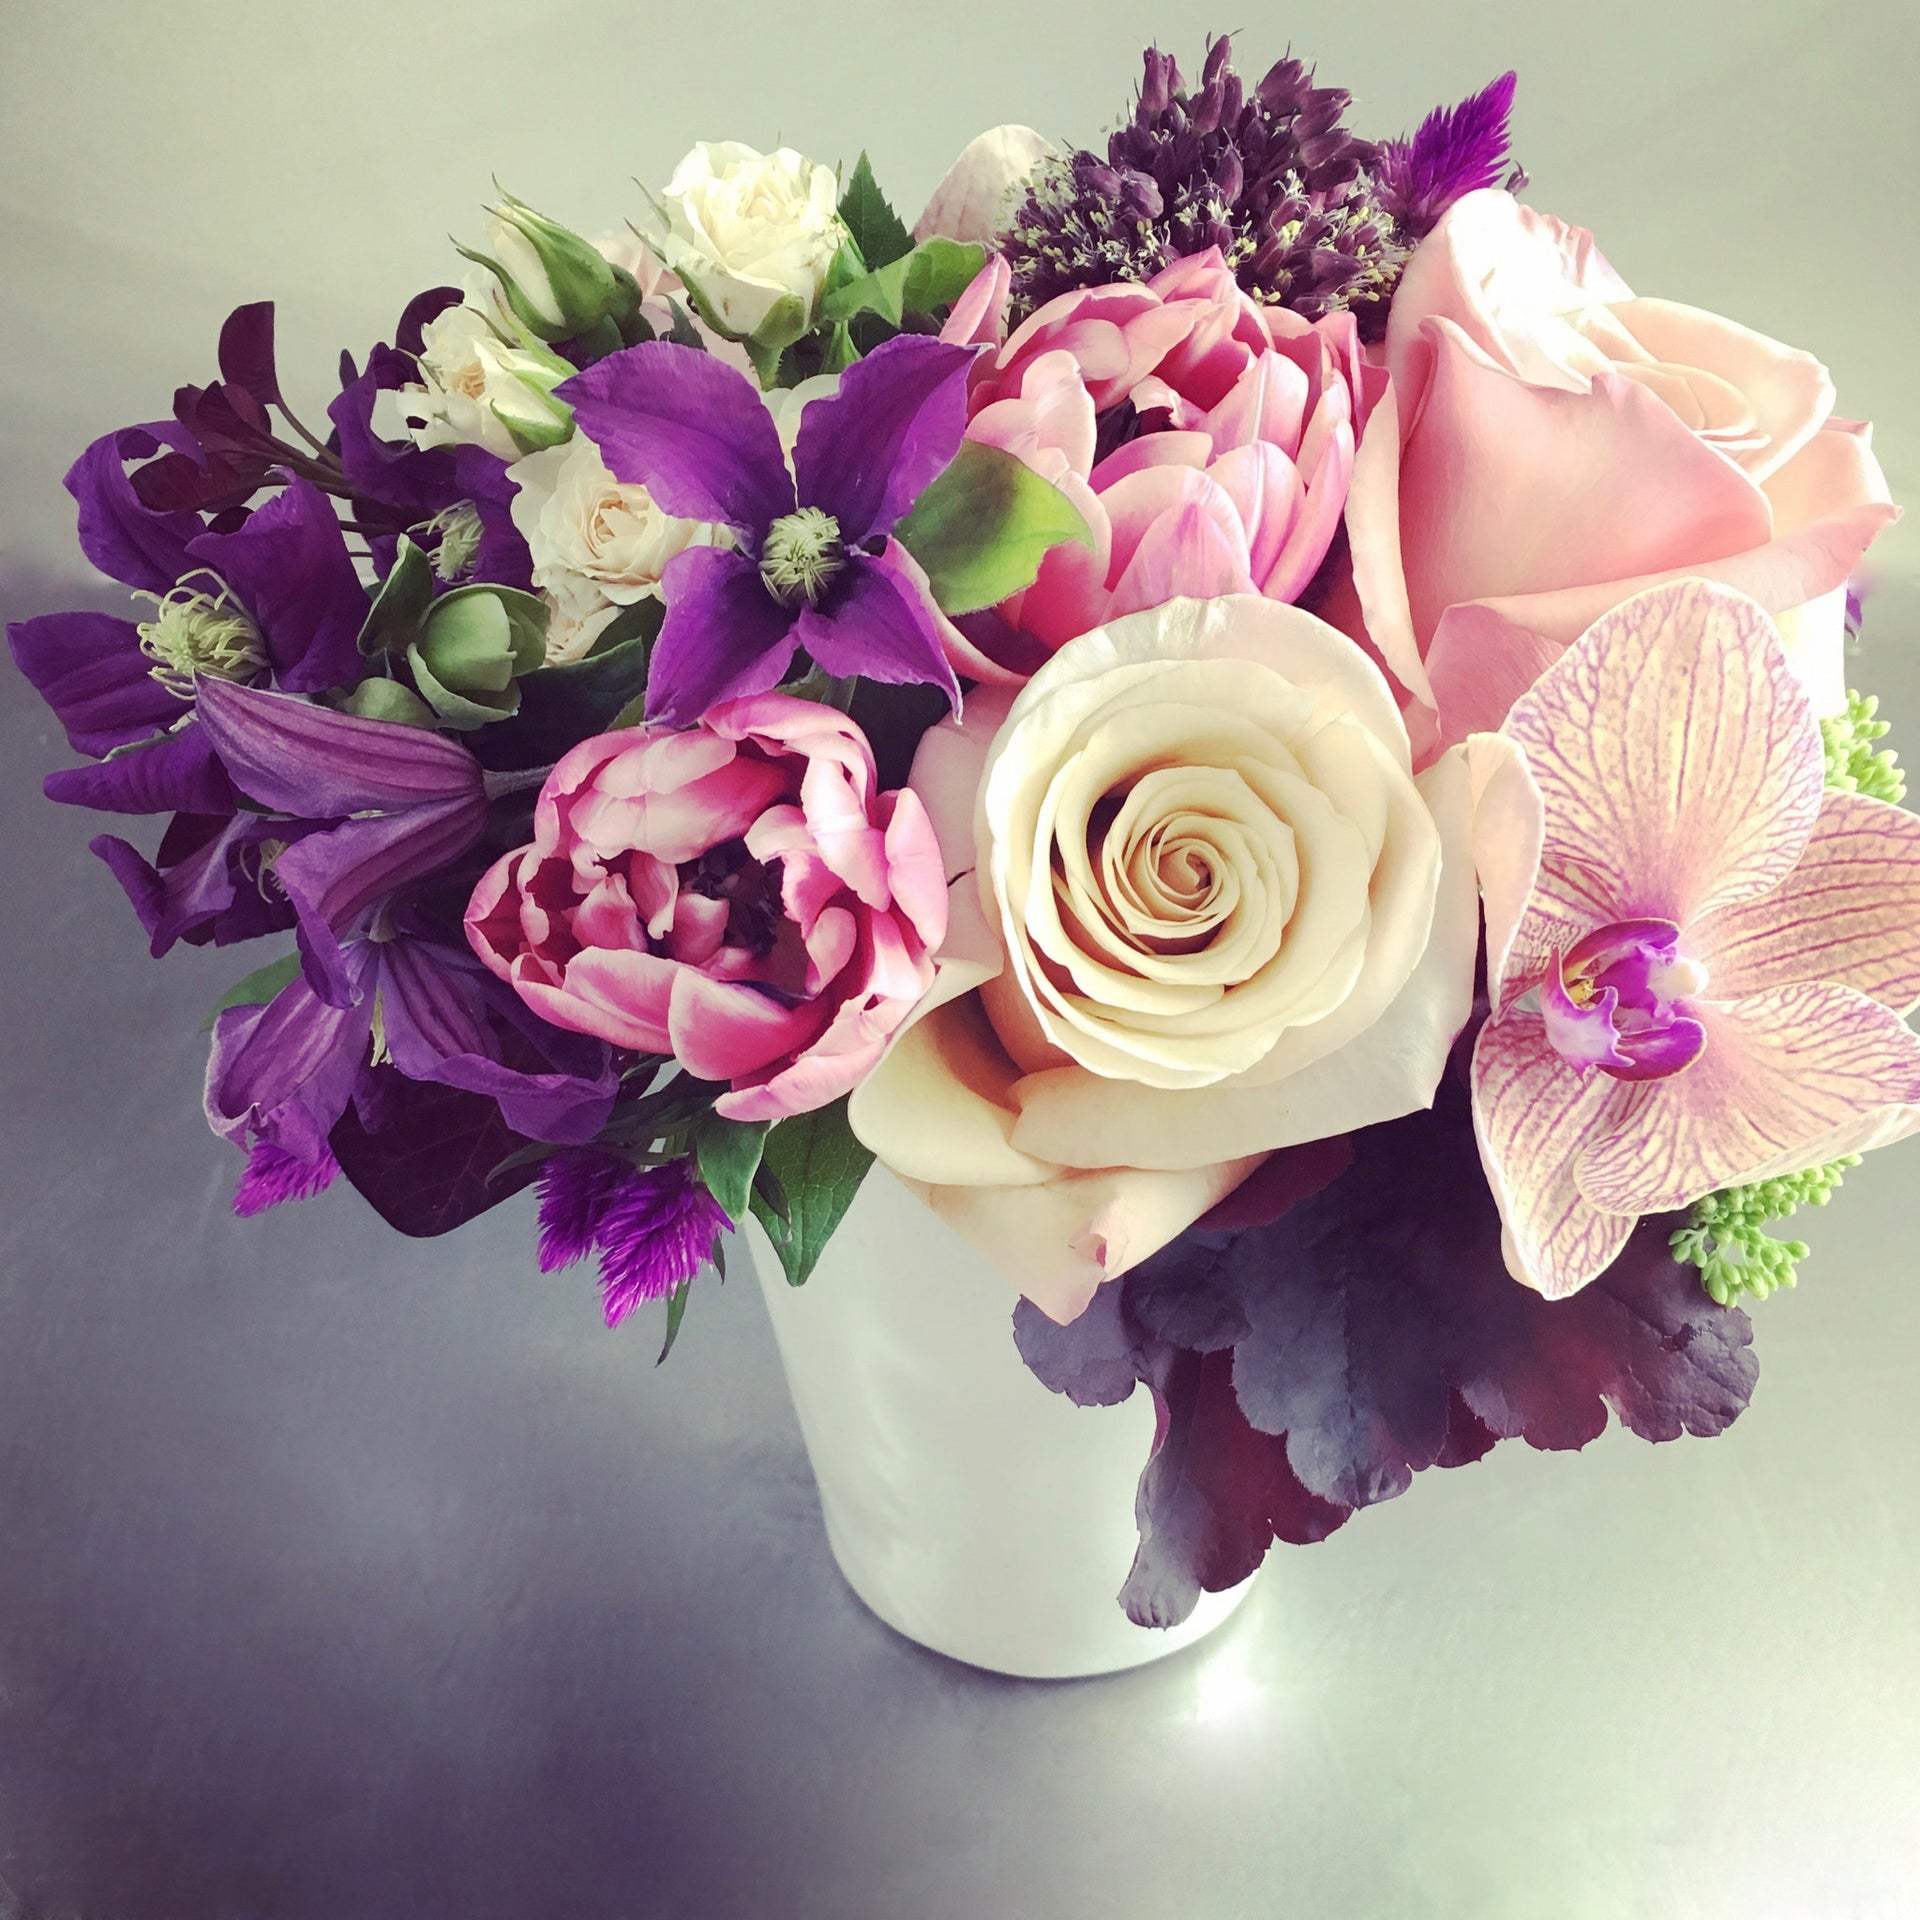 Designer's choice low arrangement using orchids, tulips, and roses.